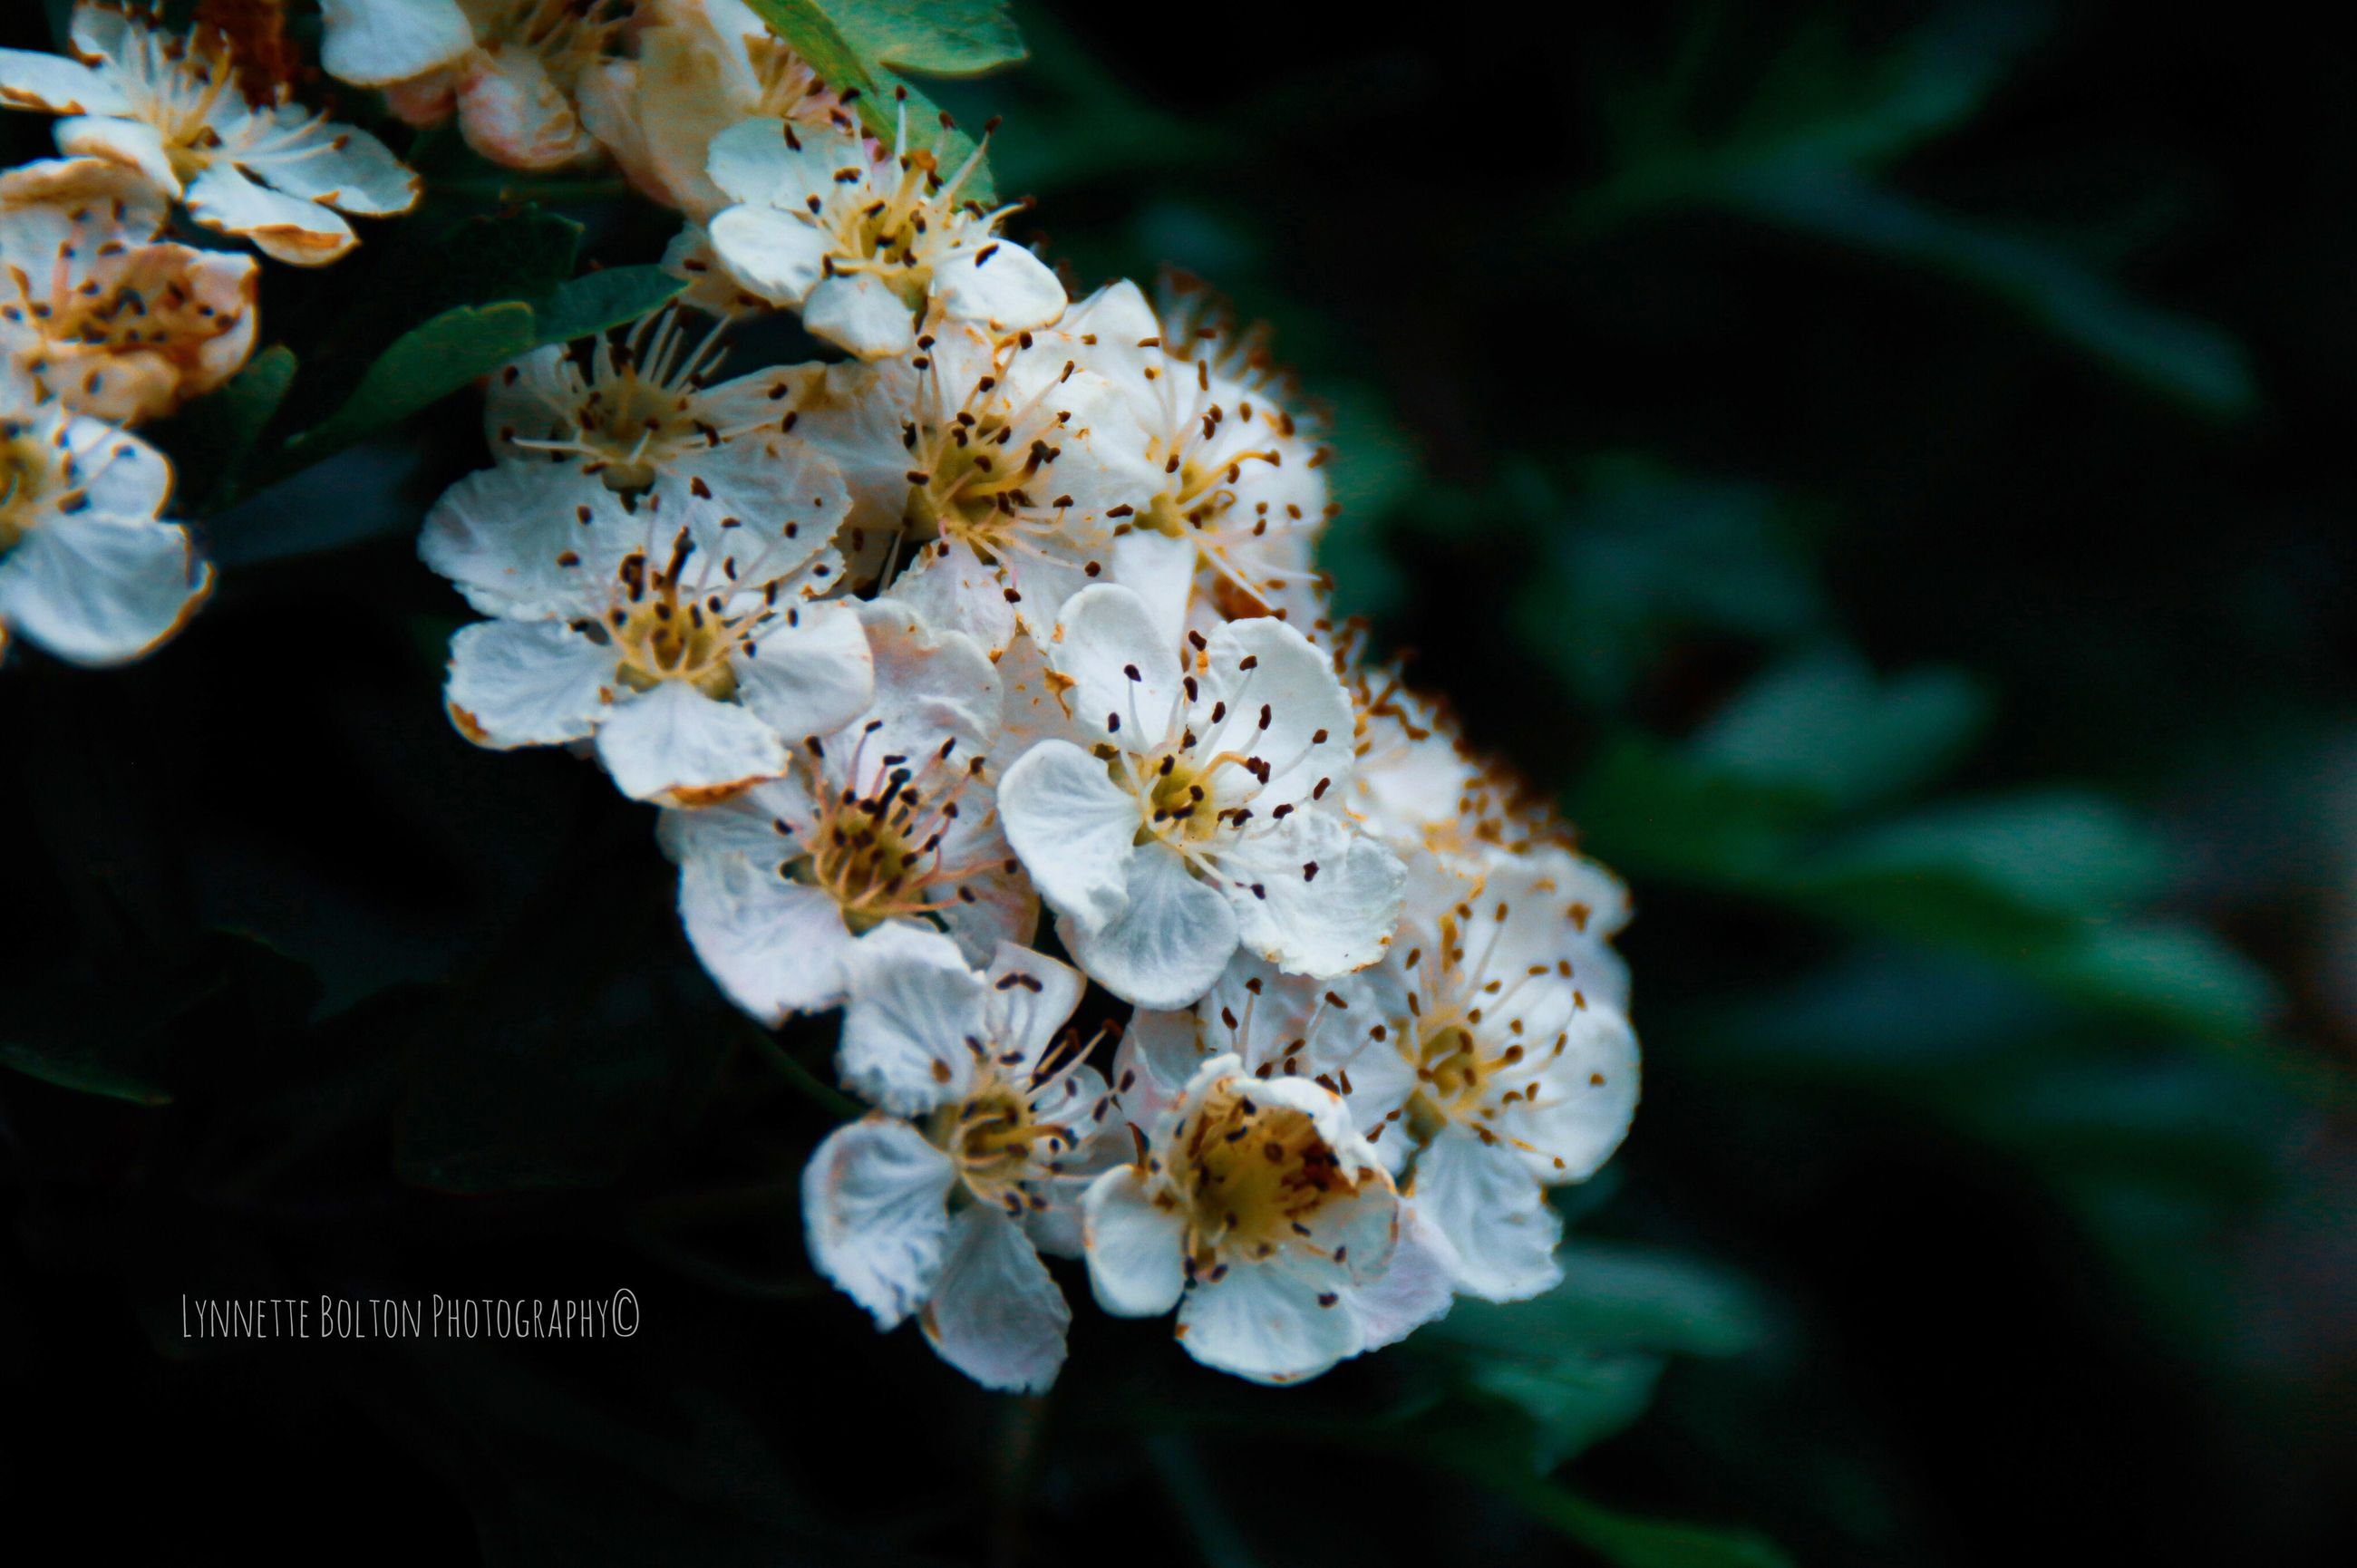 flower, flowering plant, plant, freshness, beauty in nature, petal, growth, fragility, flower head, vulnerability, close-up, inflorescence, pollen, white color, nature, no people, day, focus on foreground, outdoors, selective focus, cherry blossom